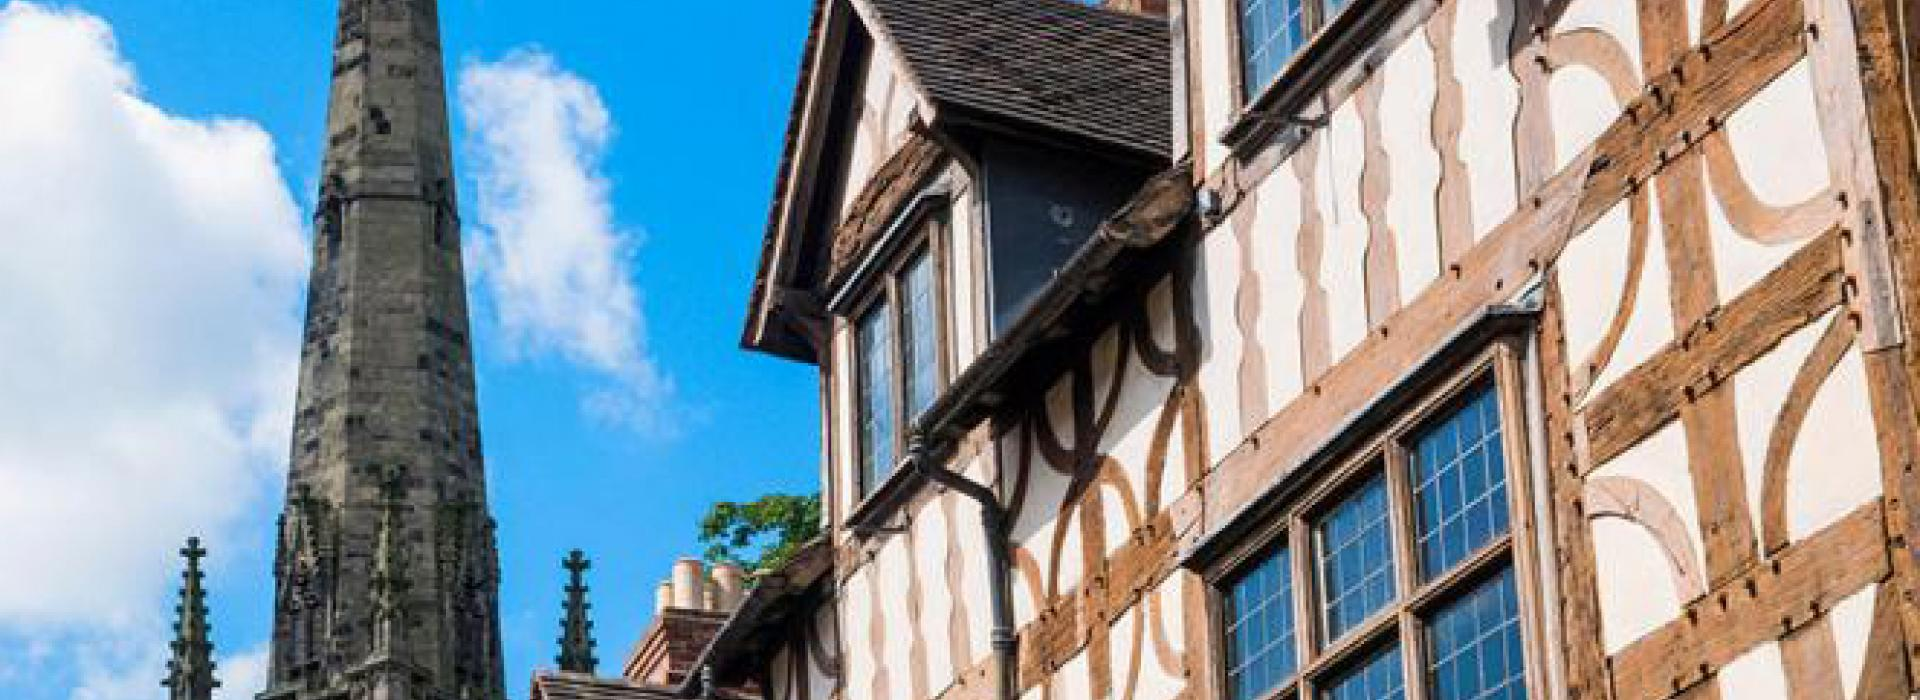 Shrewsbury once again named as one of the best places to live in the UK